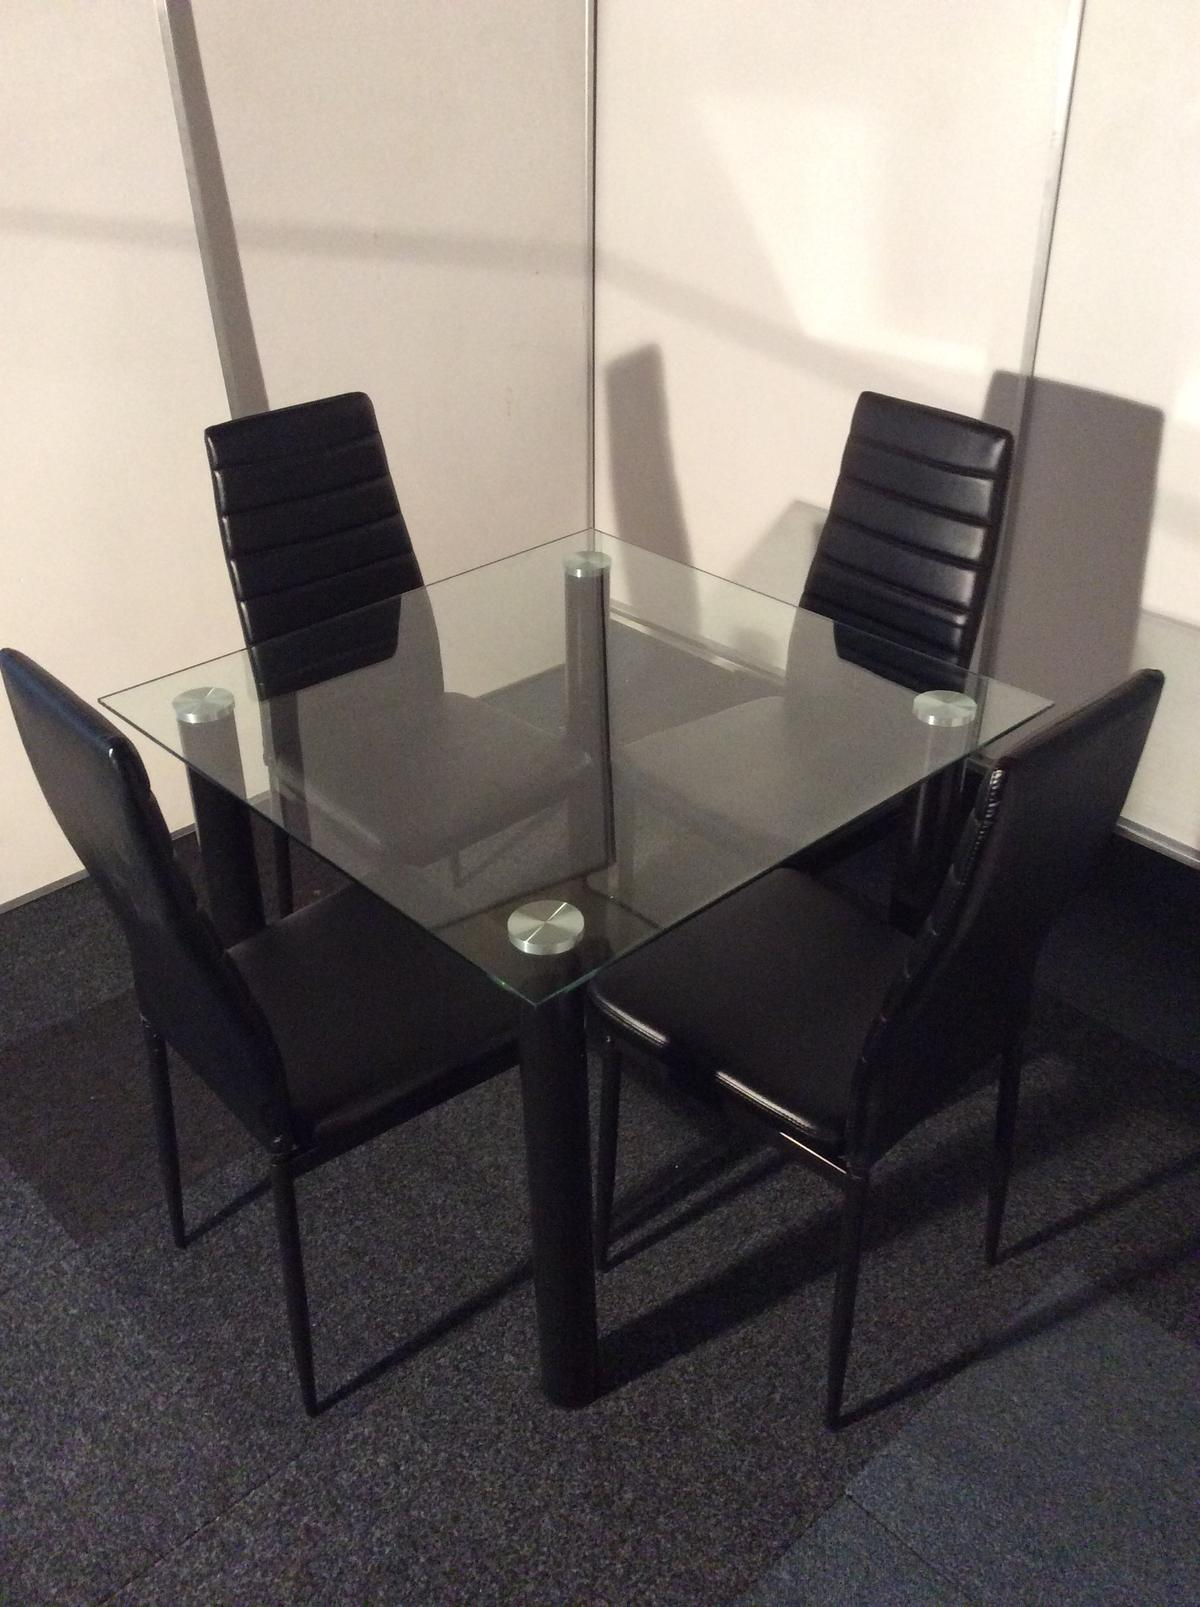 Modern Square Glass Dining Table And 4 Chairs In Wf16 Heckmondwike For 150 00 For Sale Shpock